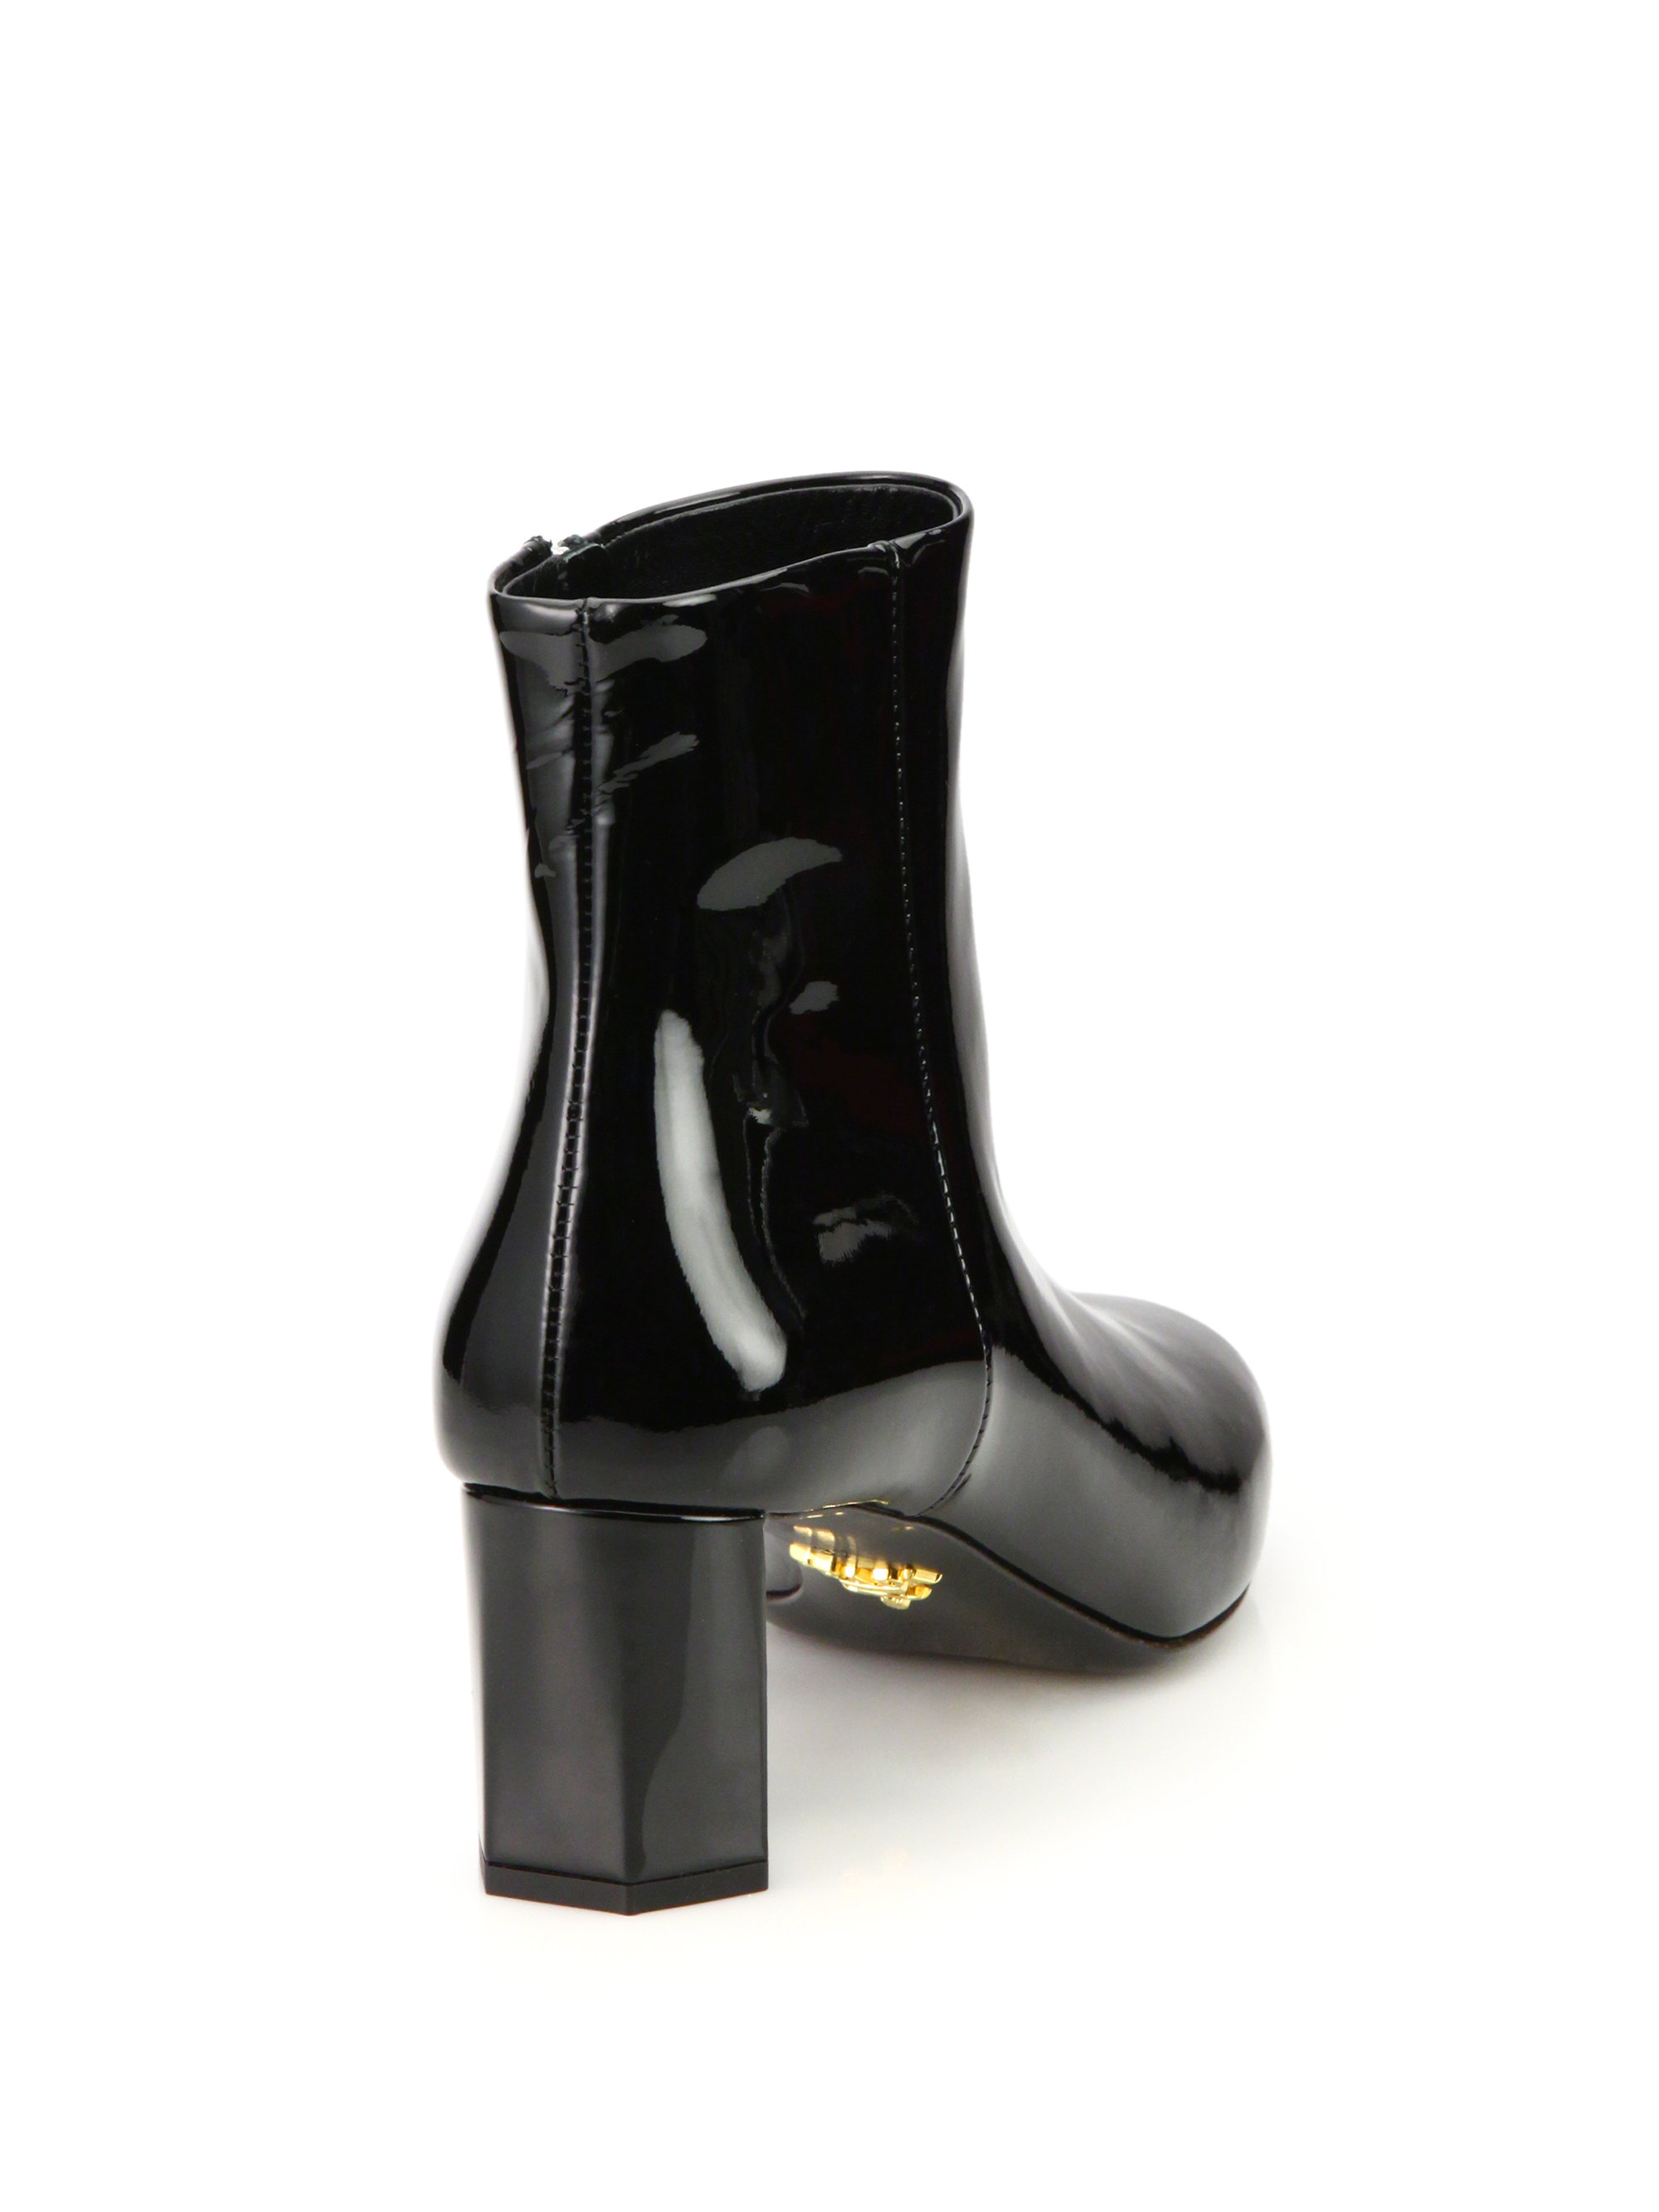 Prada high ankle boots